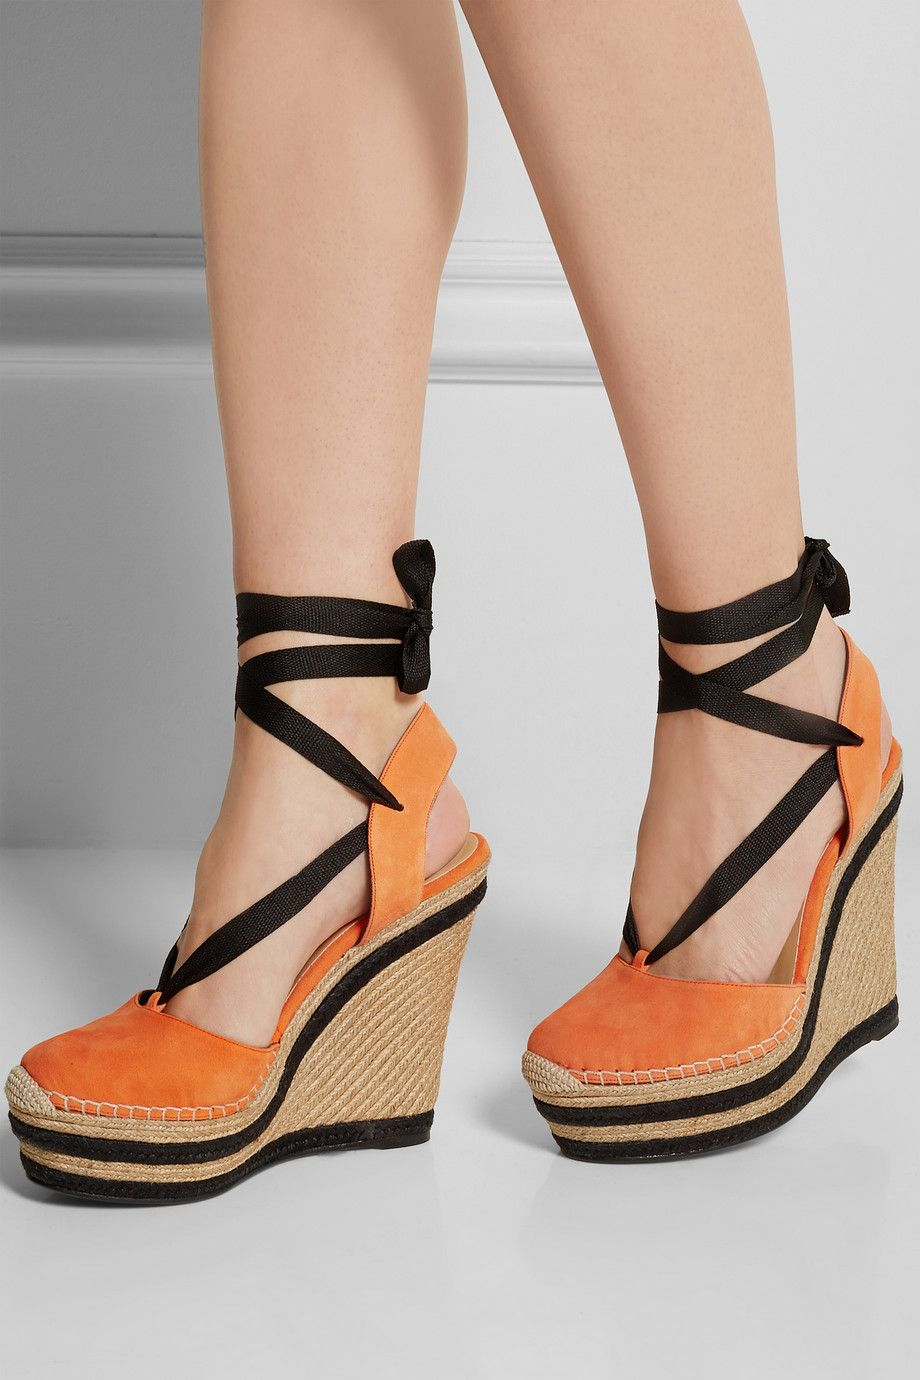 Gucci Suede Wedge Espadrilles NETAPORTERCOM Shoes - Making an invoice in word gucci outlet store online